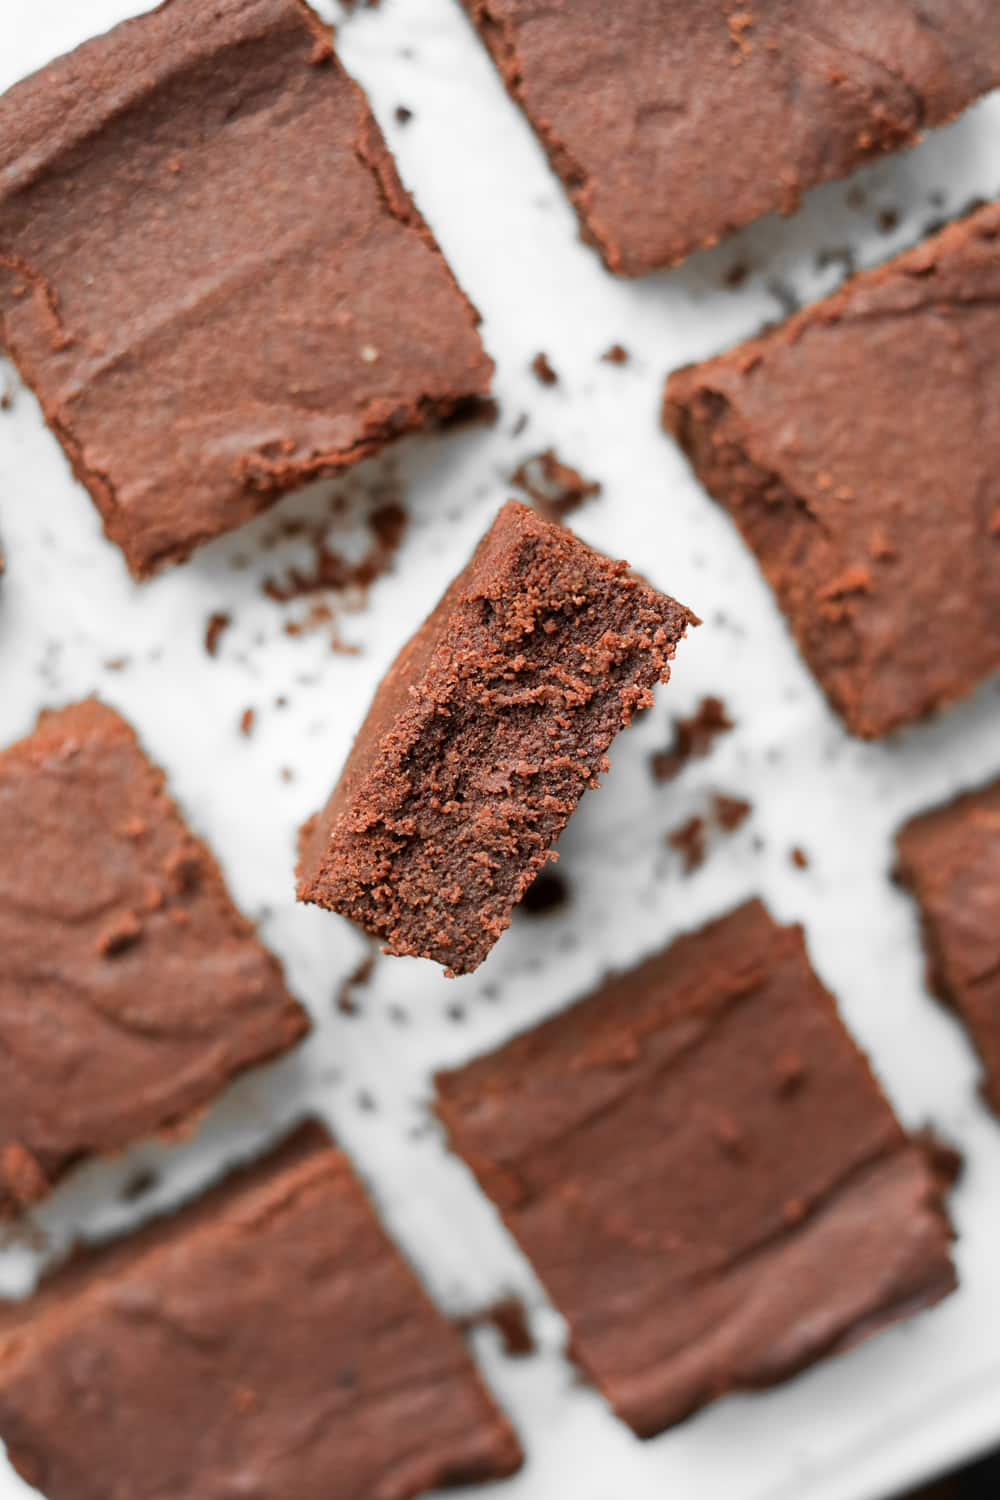 Low carb brownies laying on a plate, cut up into squares